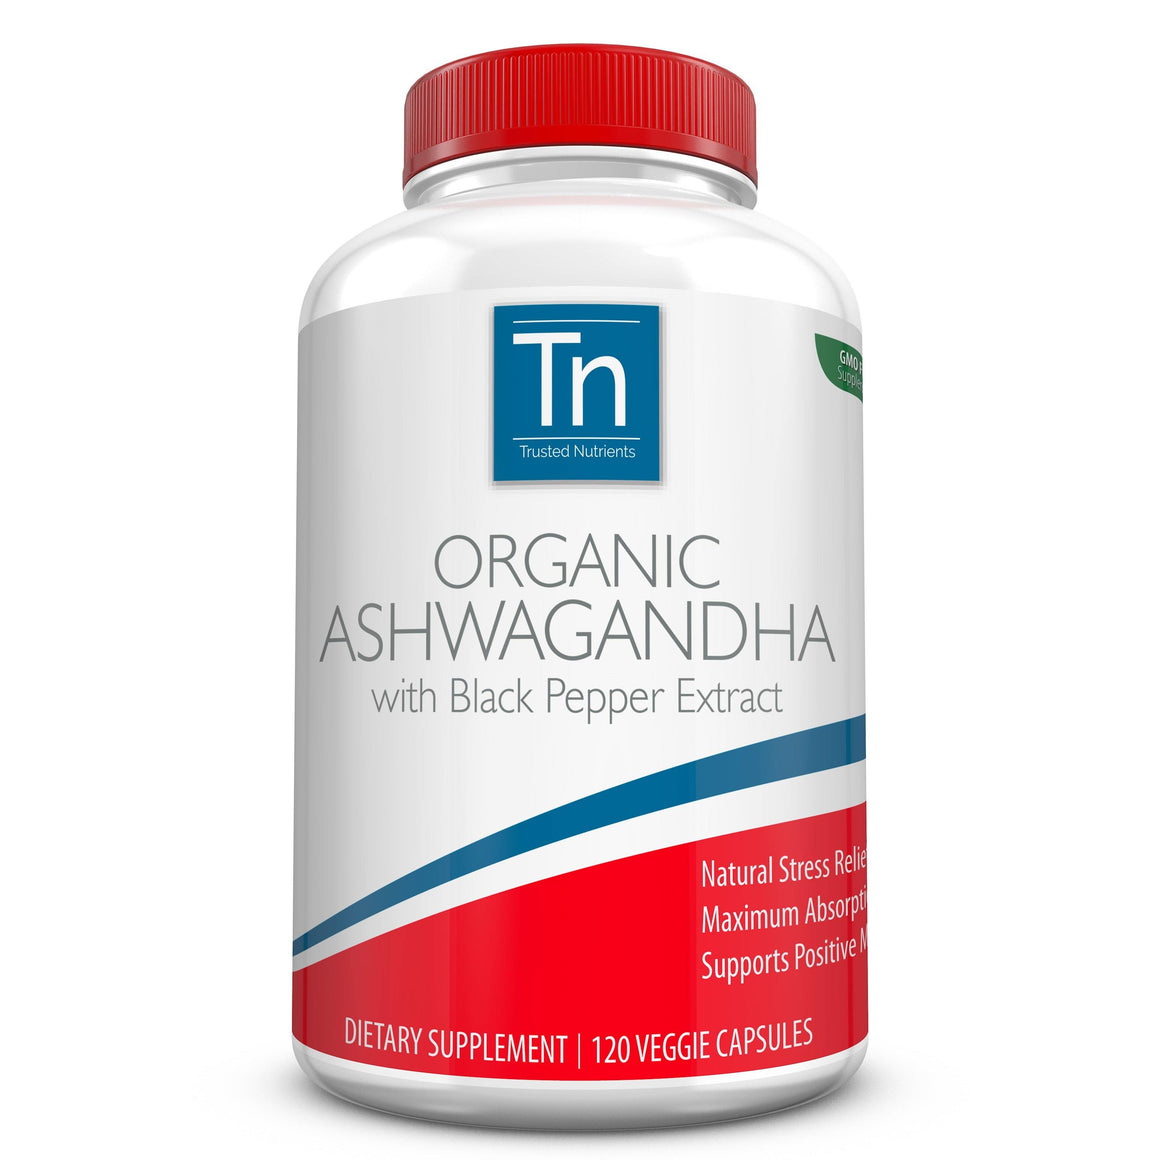 Organic Ashwagandha Supplements